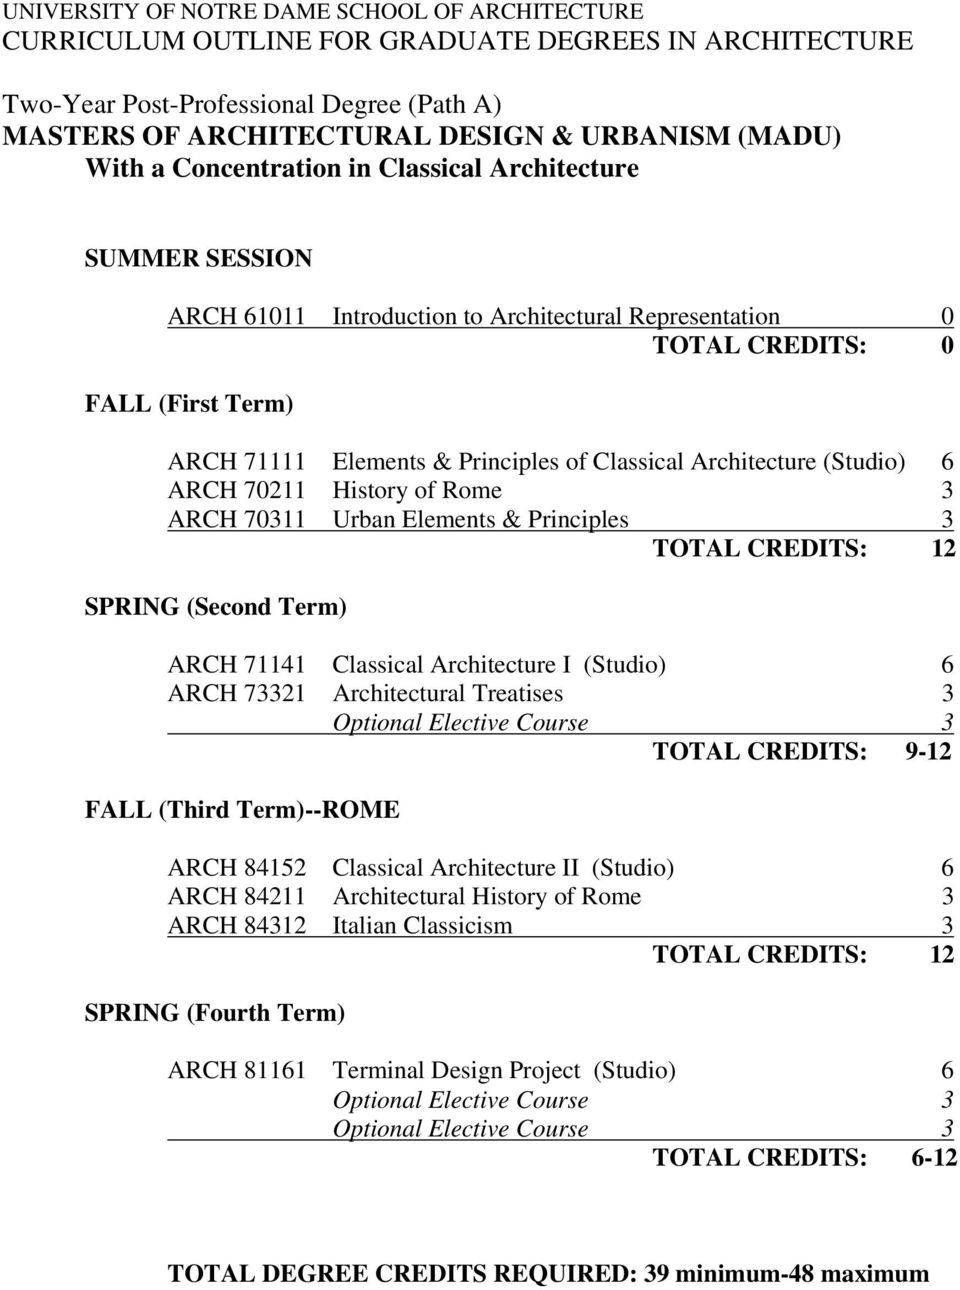 Term) ARCH 71141 Classical Architecture I (Studio) 6 ARCH 73321 Architectural Treatises 3 TOTAL CREDITS: 9-12 FALL (Third Term)--ROME ARCH 84152 Classical Architecture II (Studio) 6 ARCH 84211